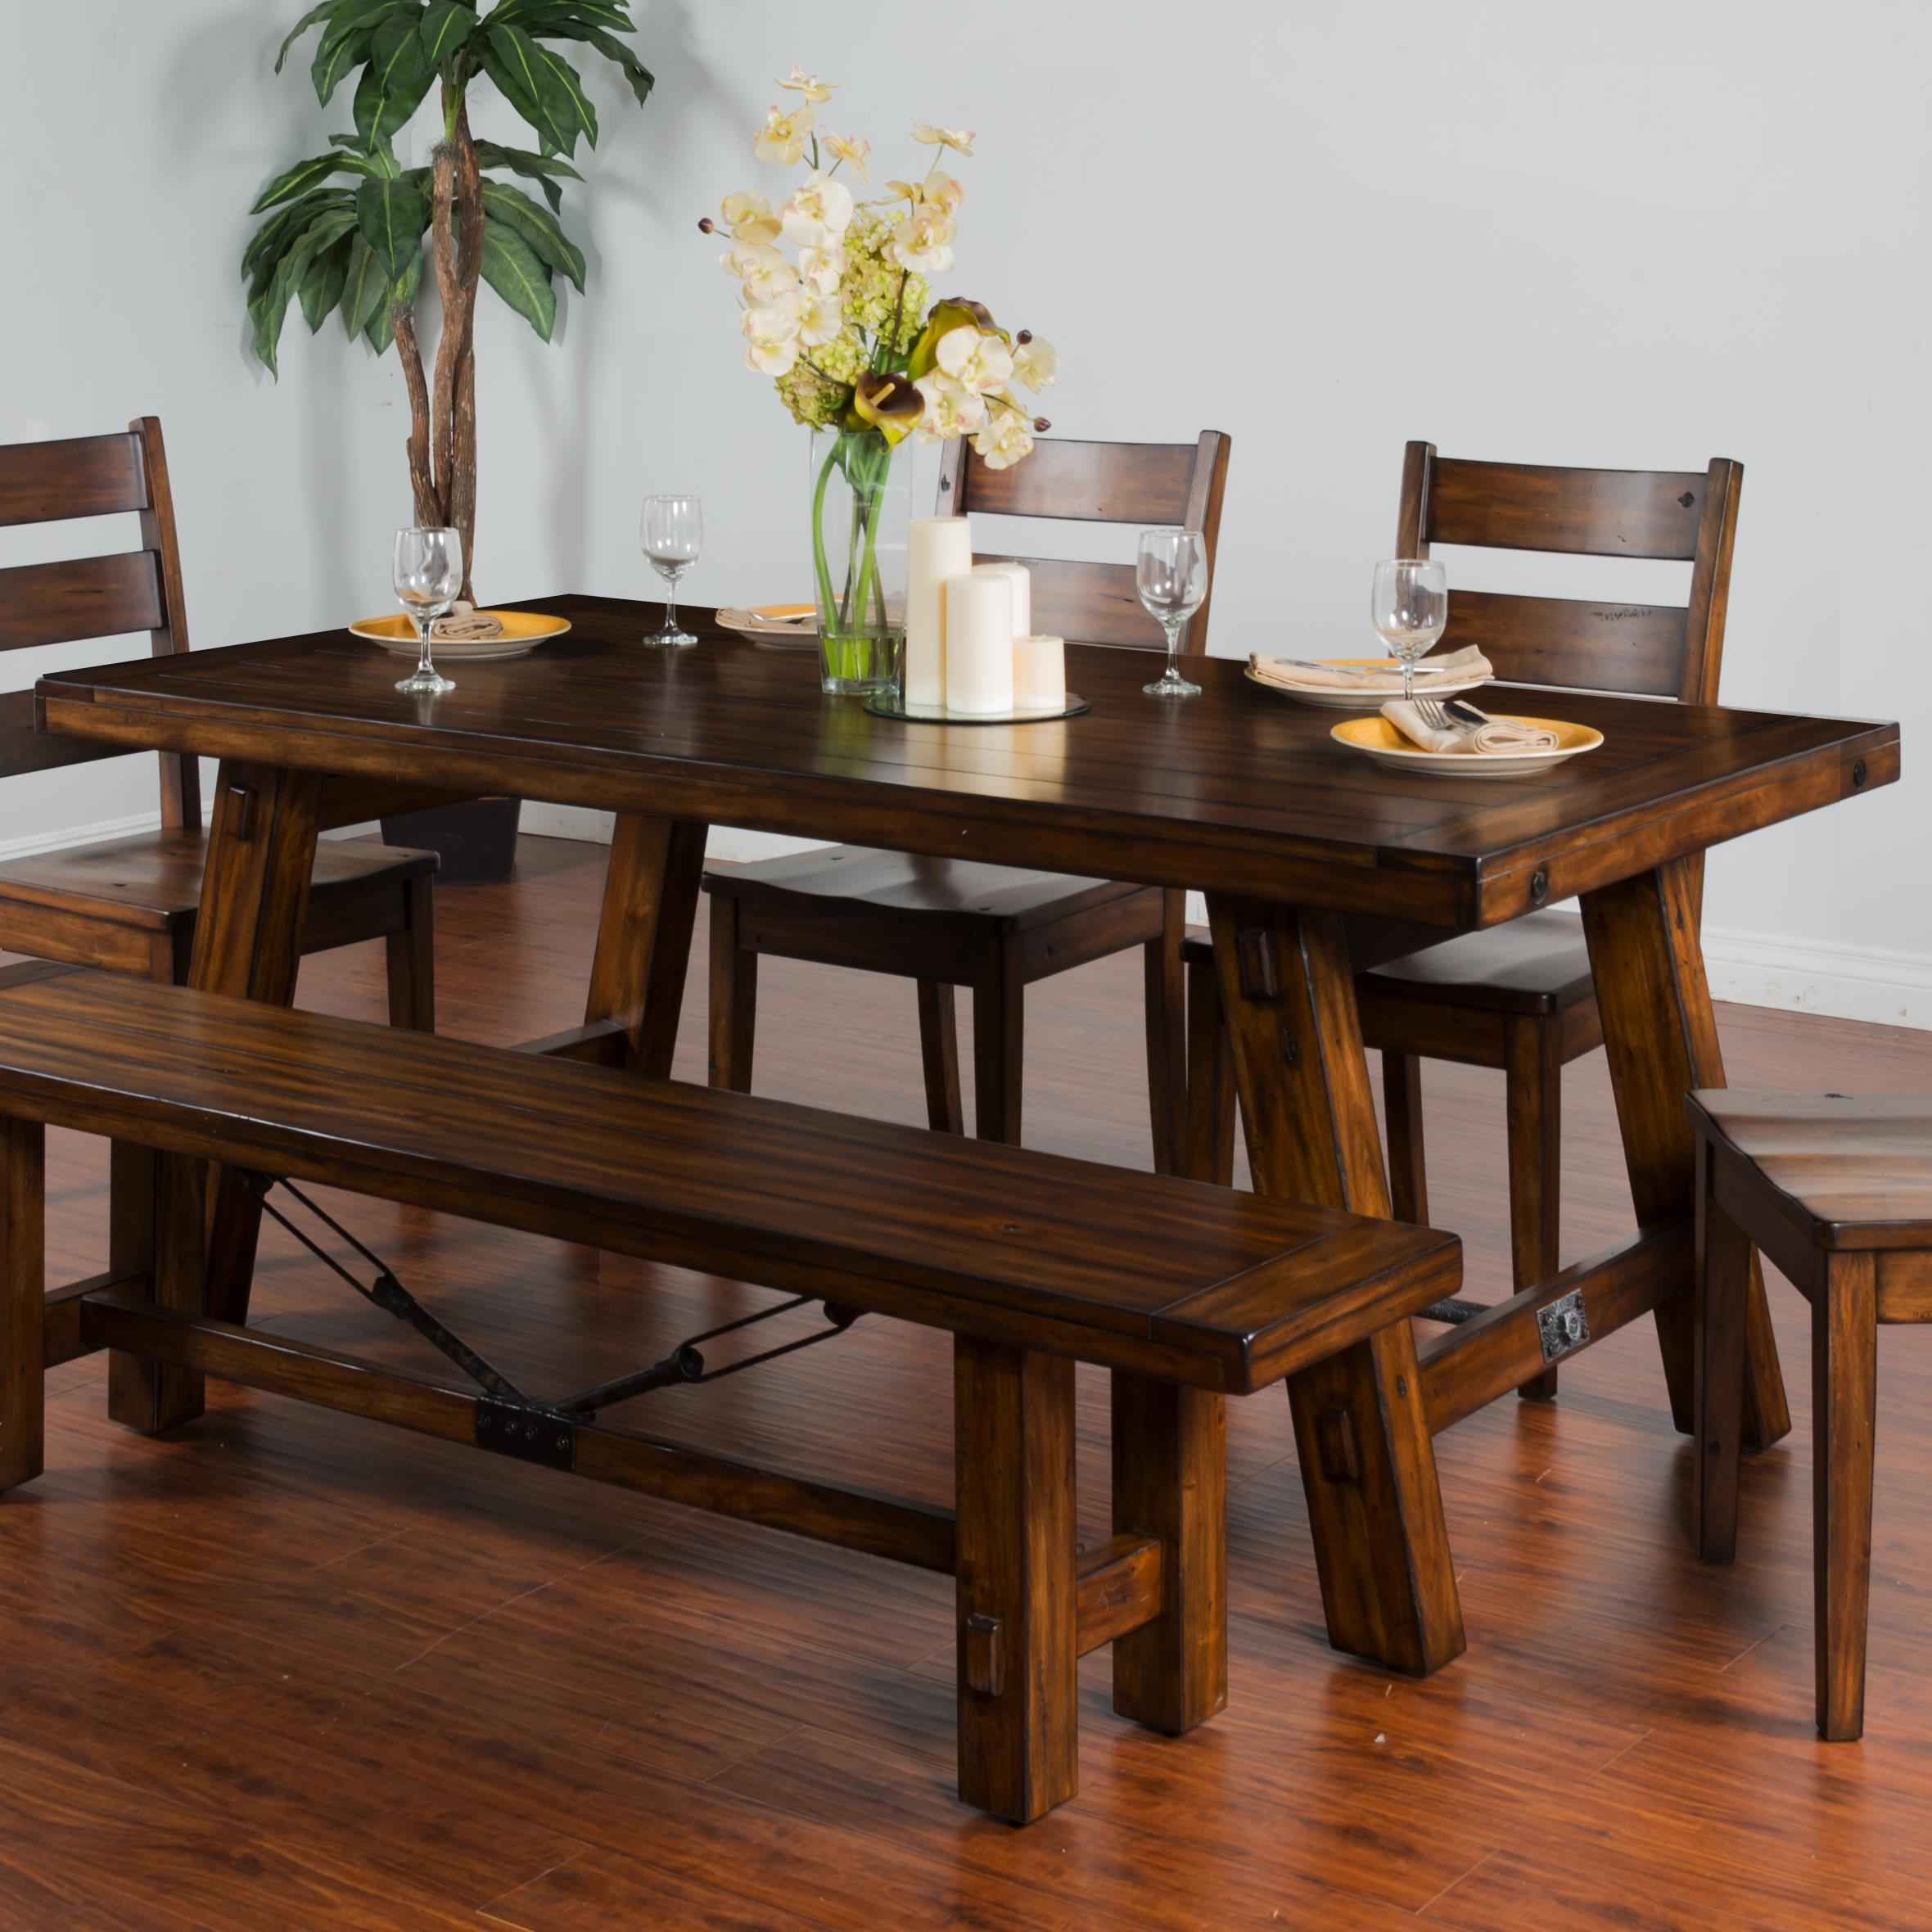 By Sunny Designs. Distressed Mahogany Extension Table W/ Turnbuckle Accent